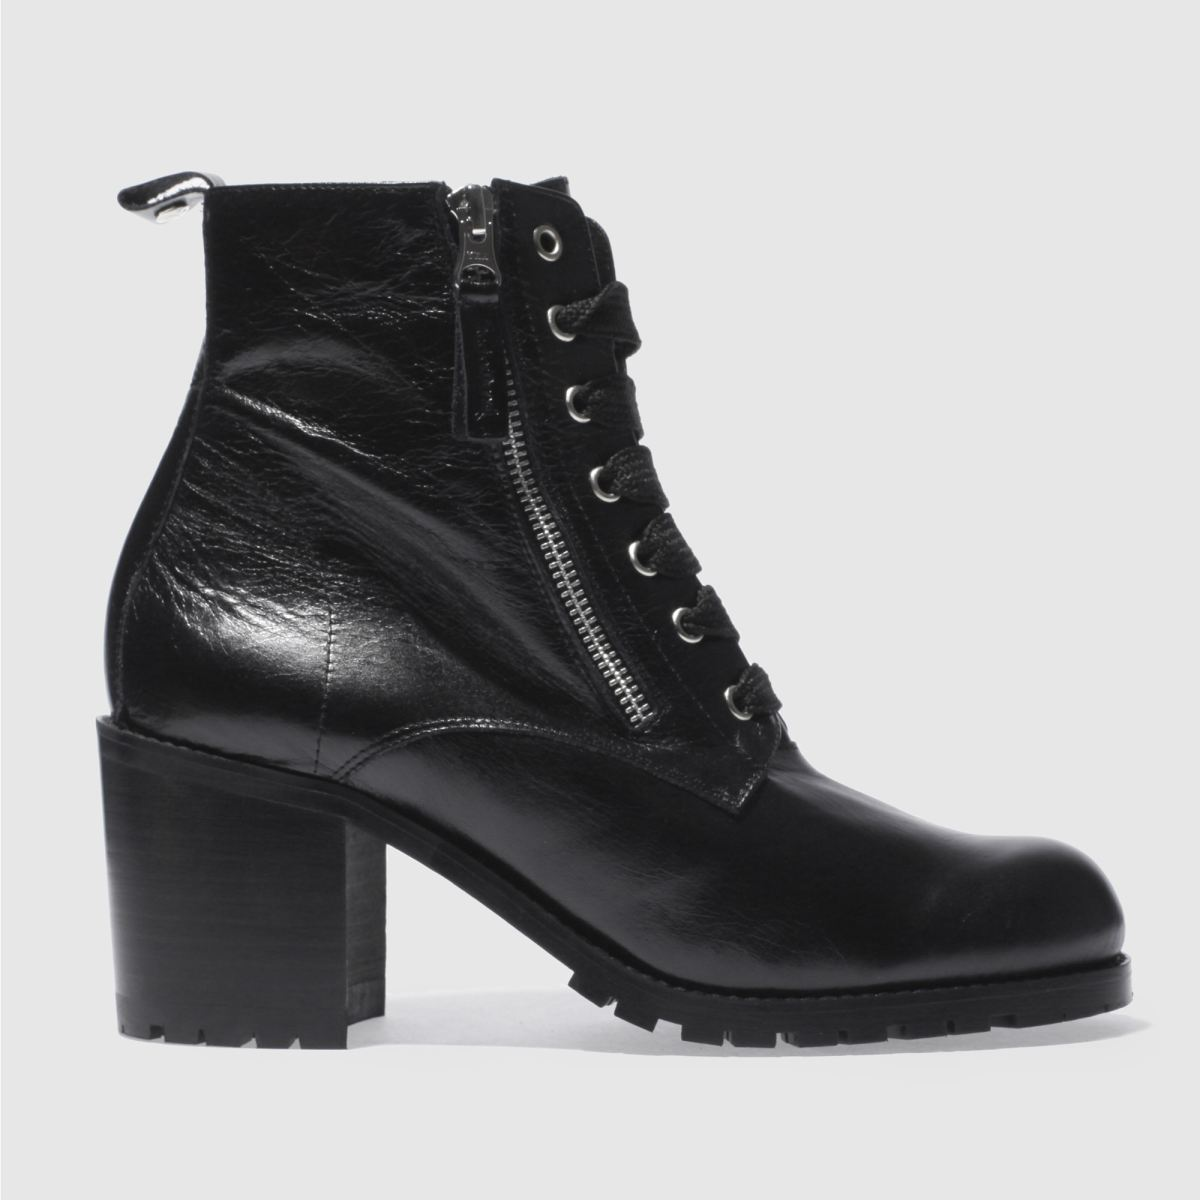 red or dead black jagged boots